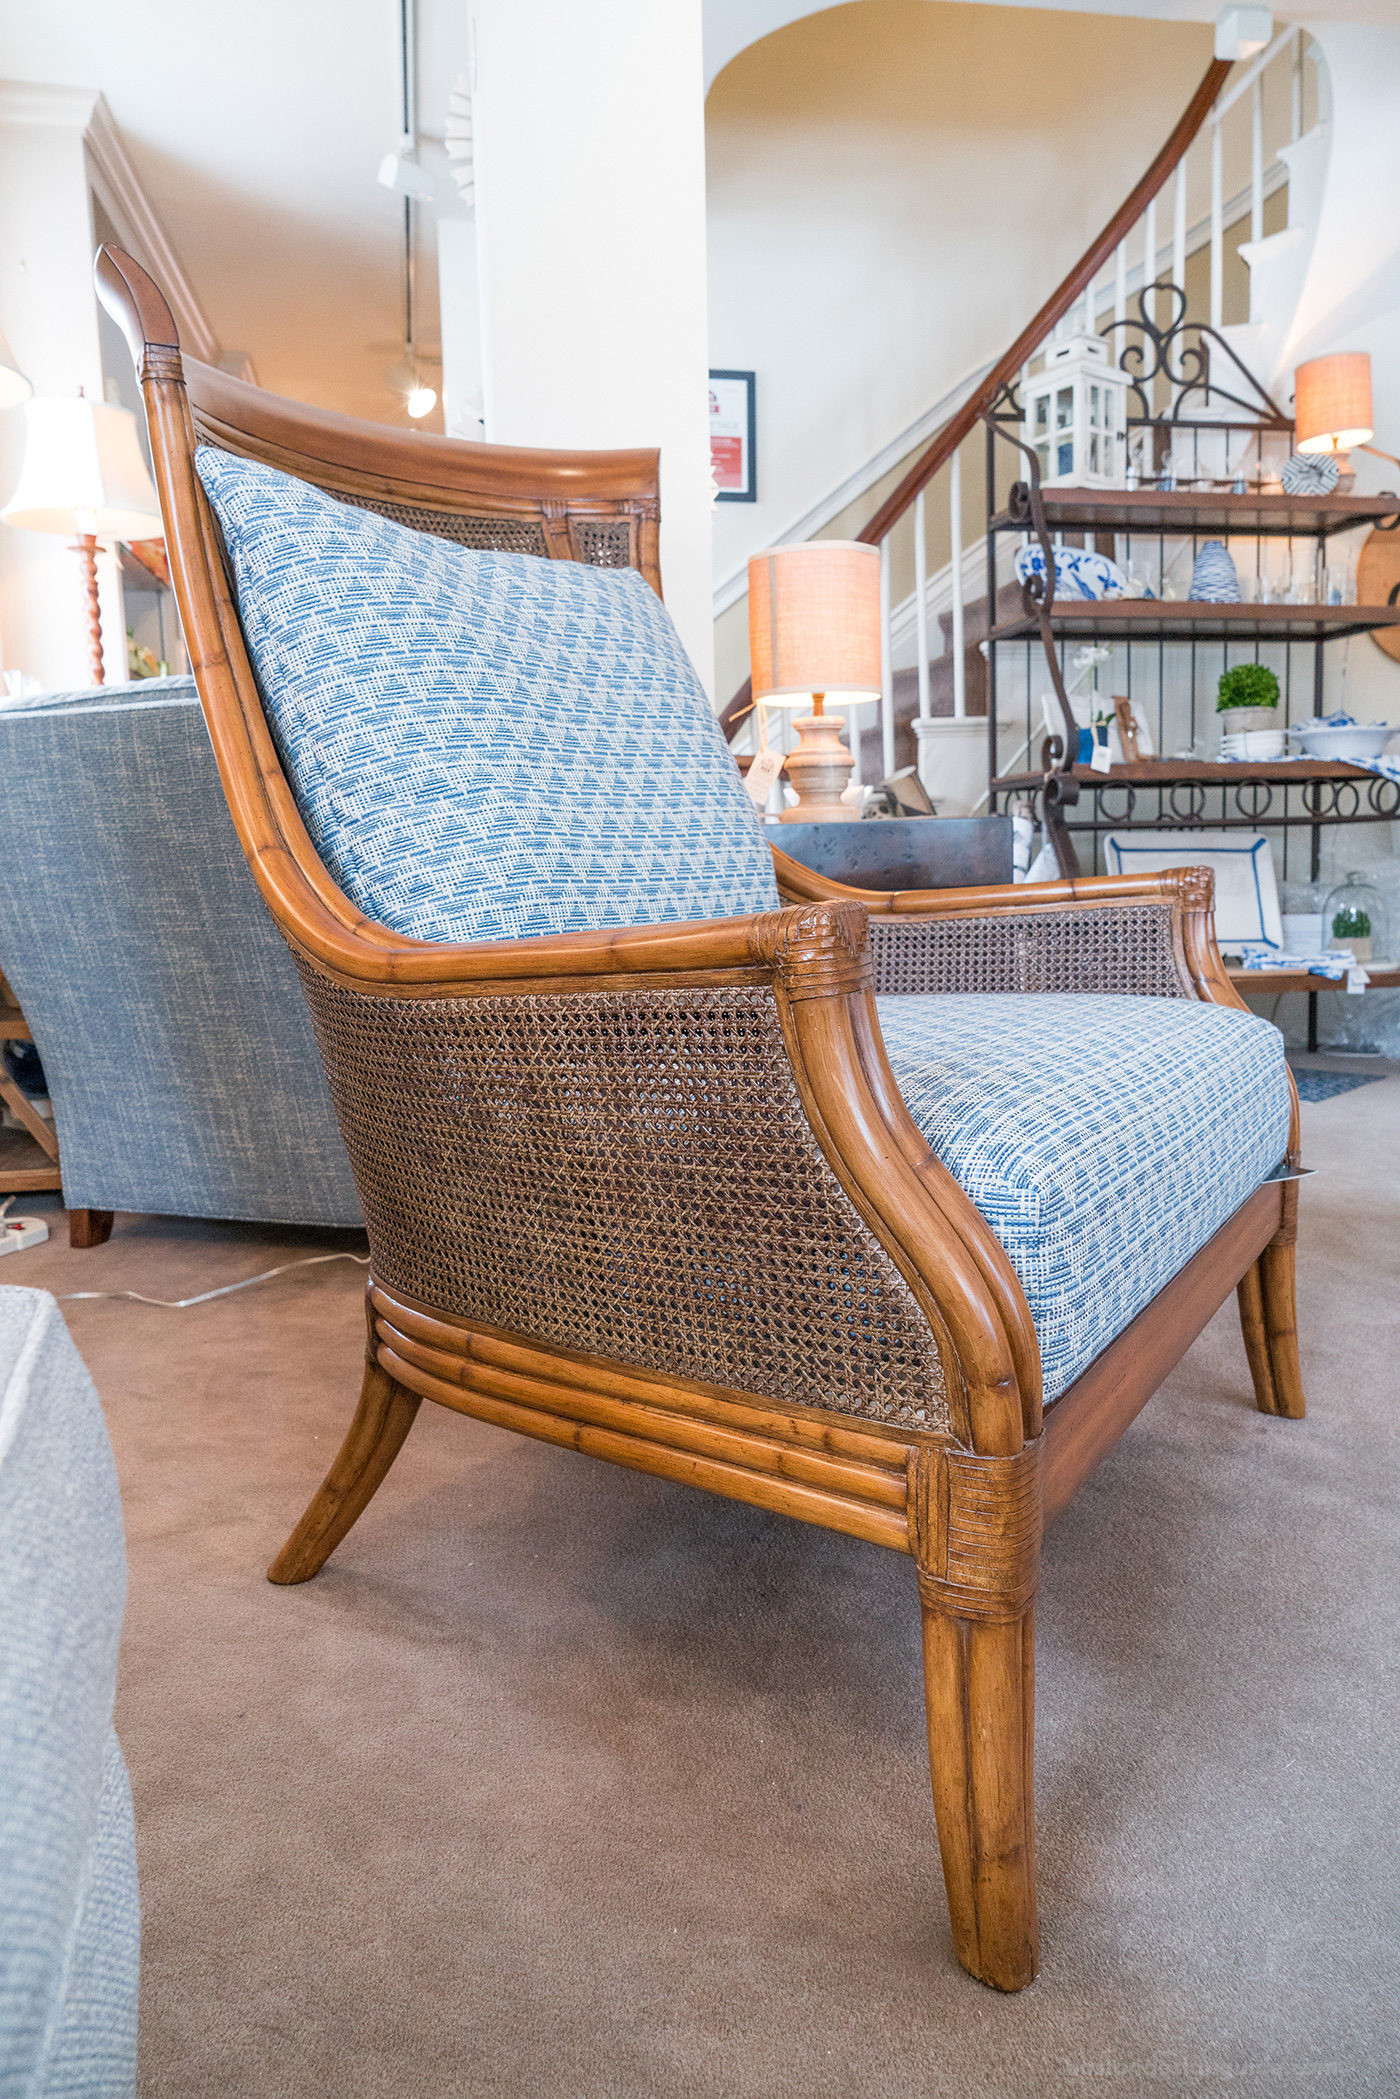 High-end home furnishings and accents in Boston area